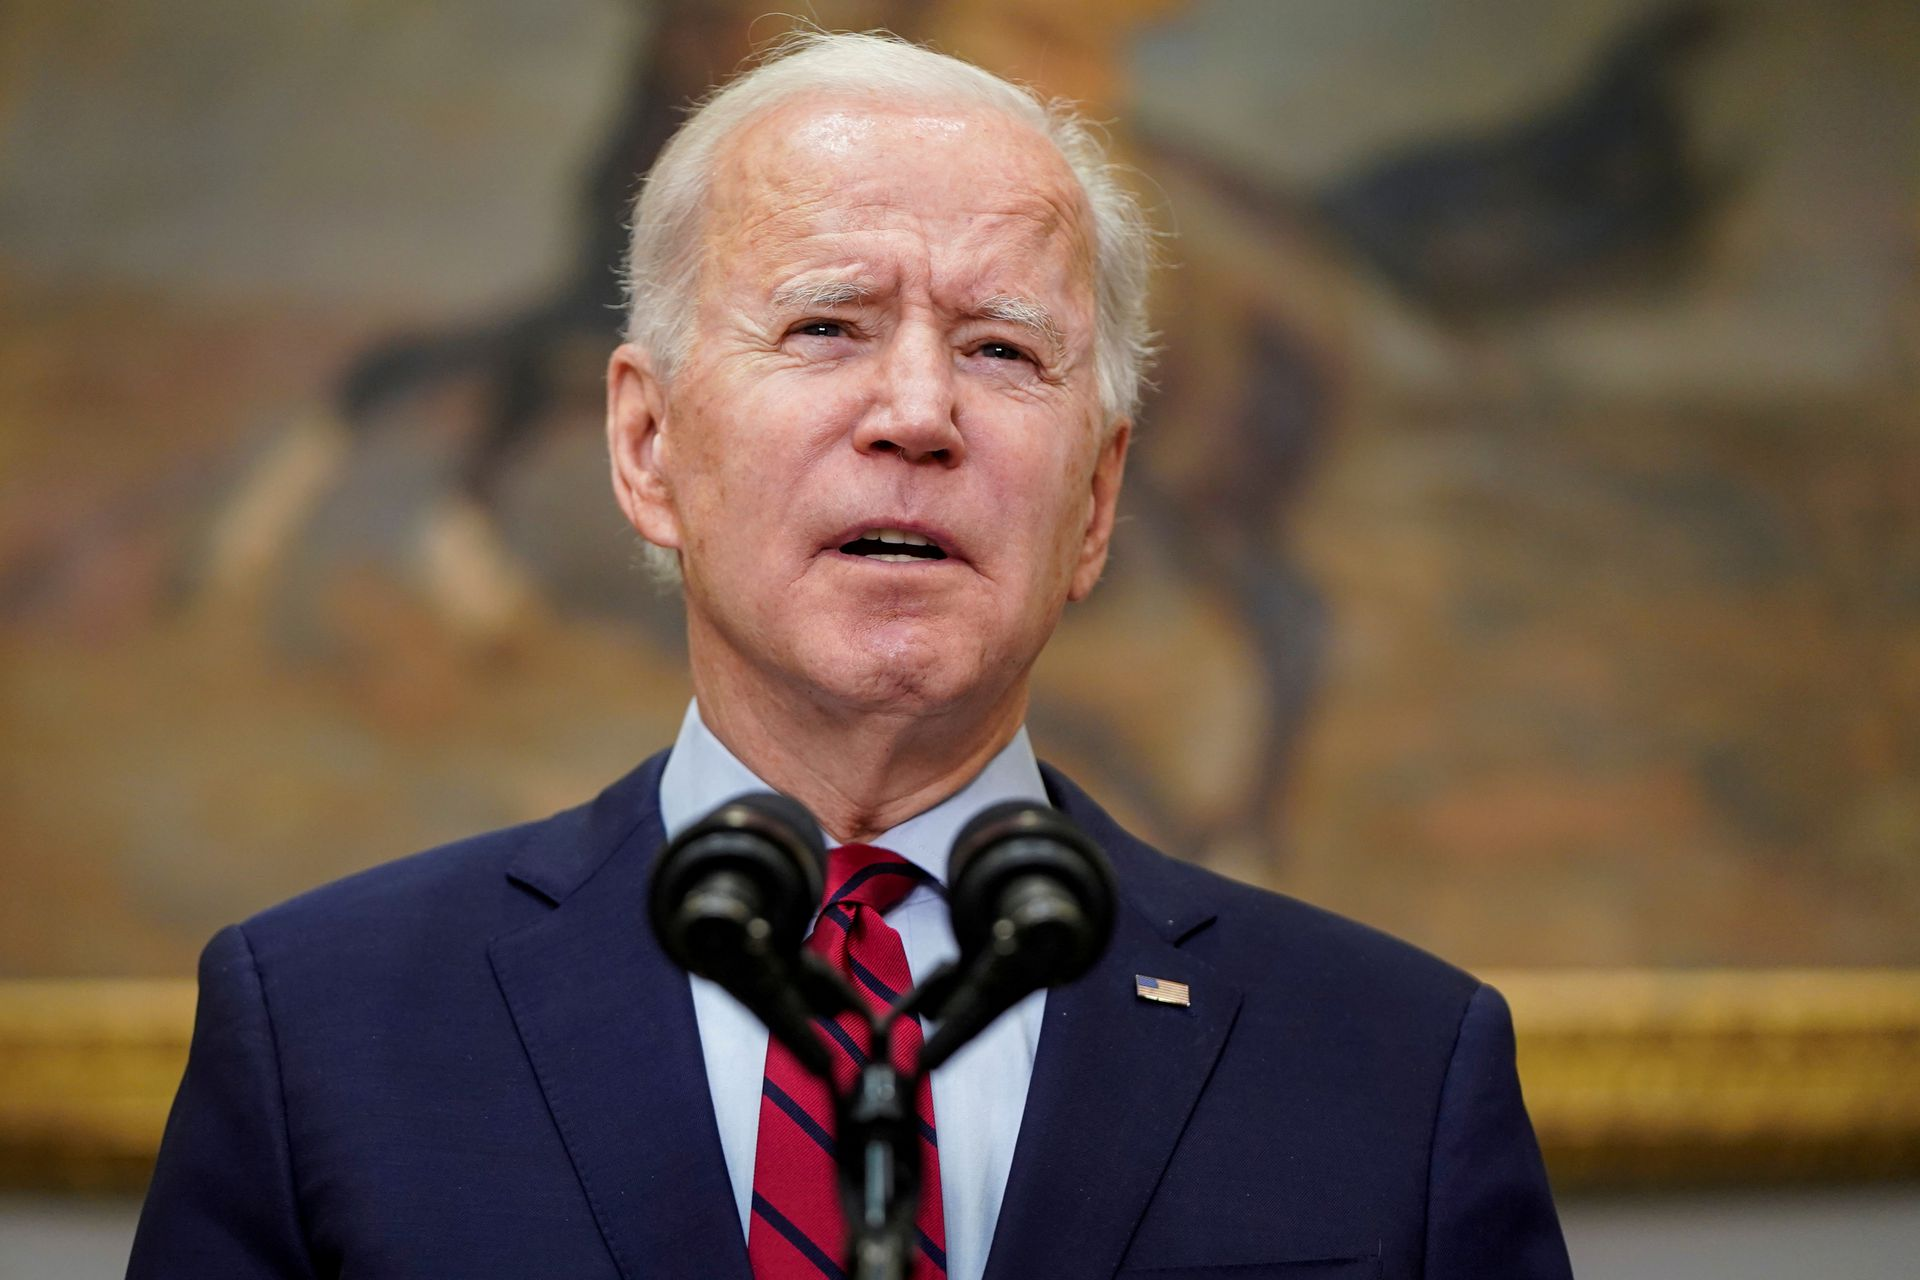 Biden to Raise Refugee Resettlement Cap After Outcry from Progressives and Christian Groups